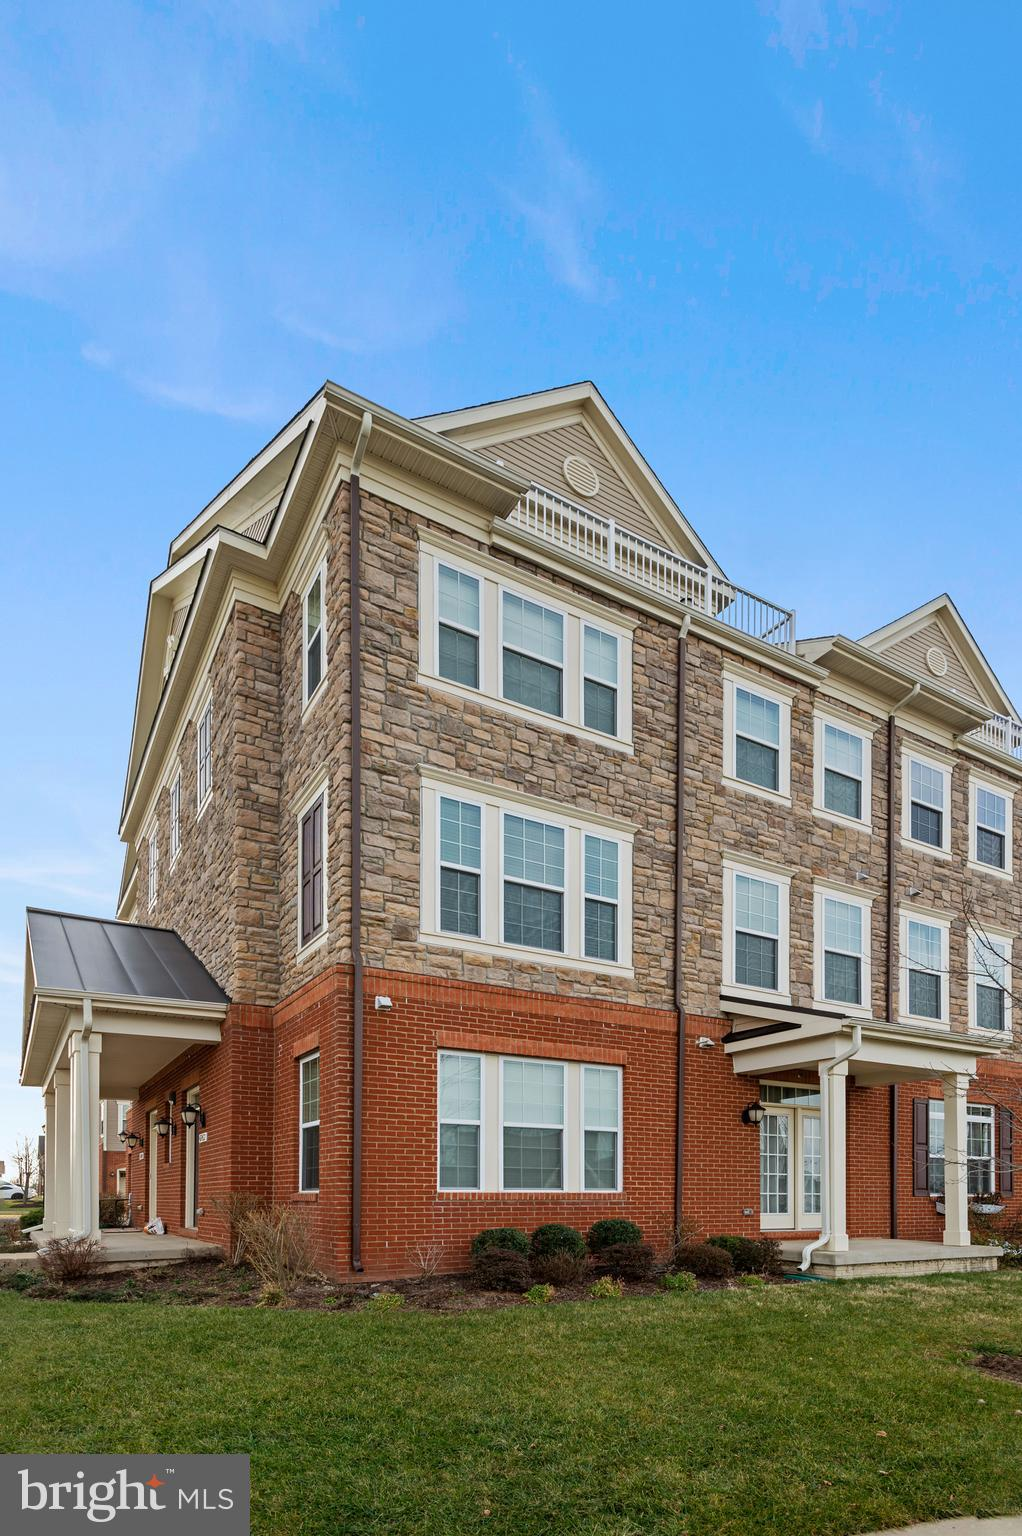 Beautiful 4-level townhome-style condo end-unit in desirable Goose Creek Reserve with 3 bedrooms, 2.